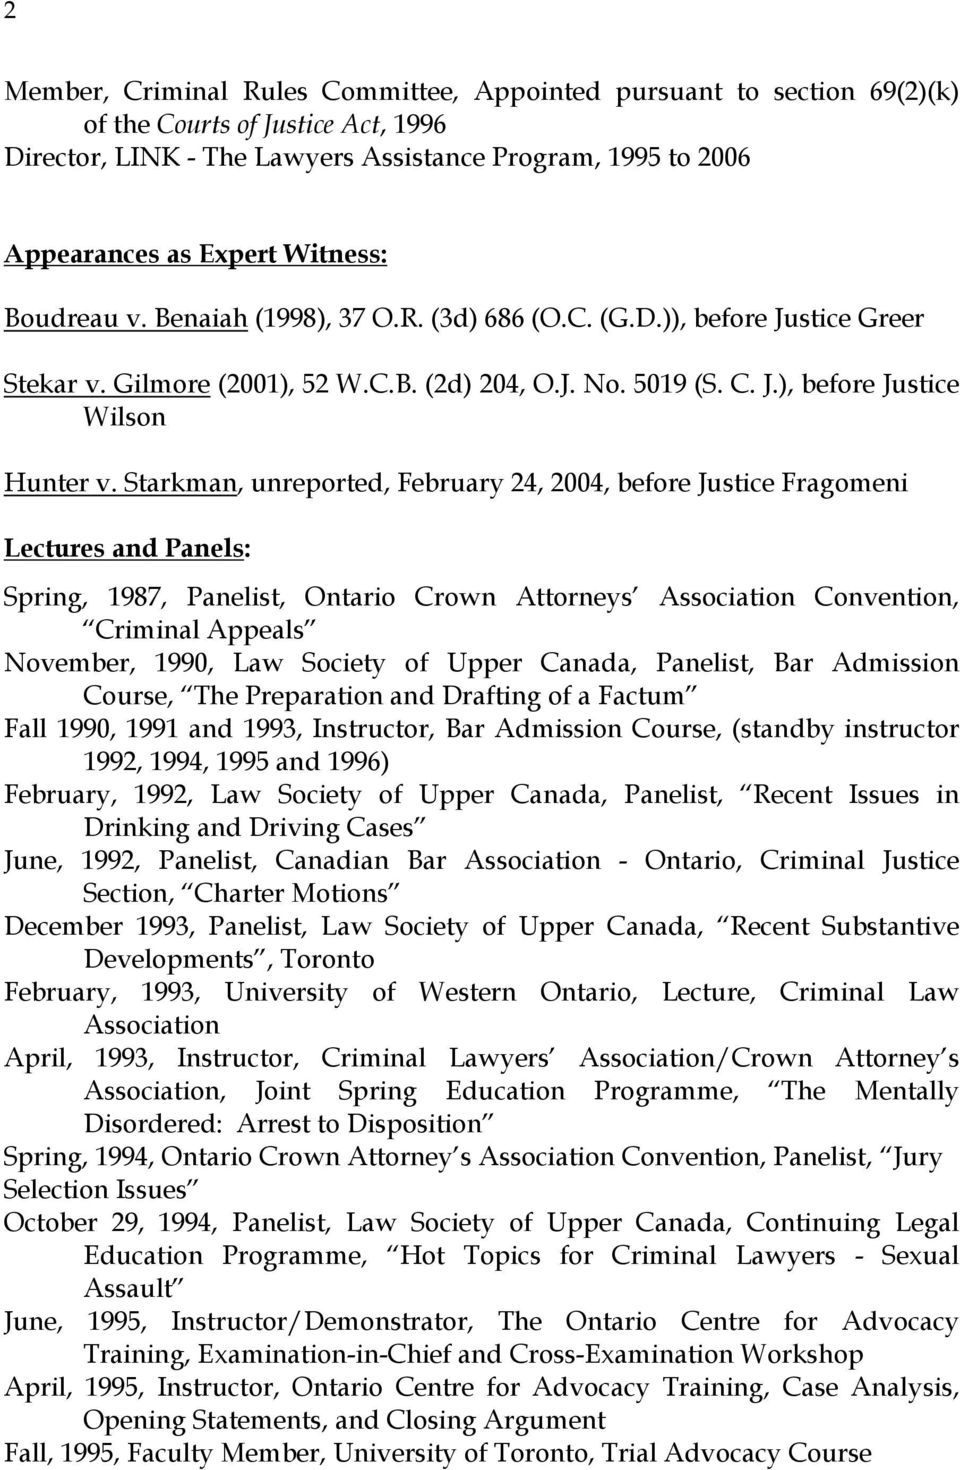 Starkman, unreported, February 24, 2004, before Justice Fragomeni Lectures and Panels: Spring, 1987, Panelist, Ontario Crown Attorneys Association Convention, Criminal Appeals November, 1990, Law